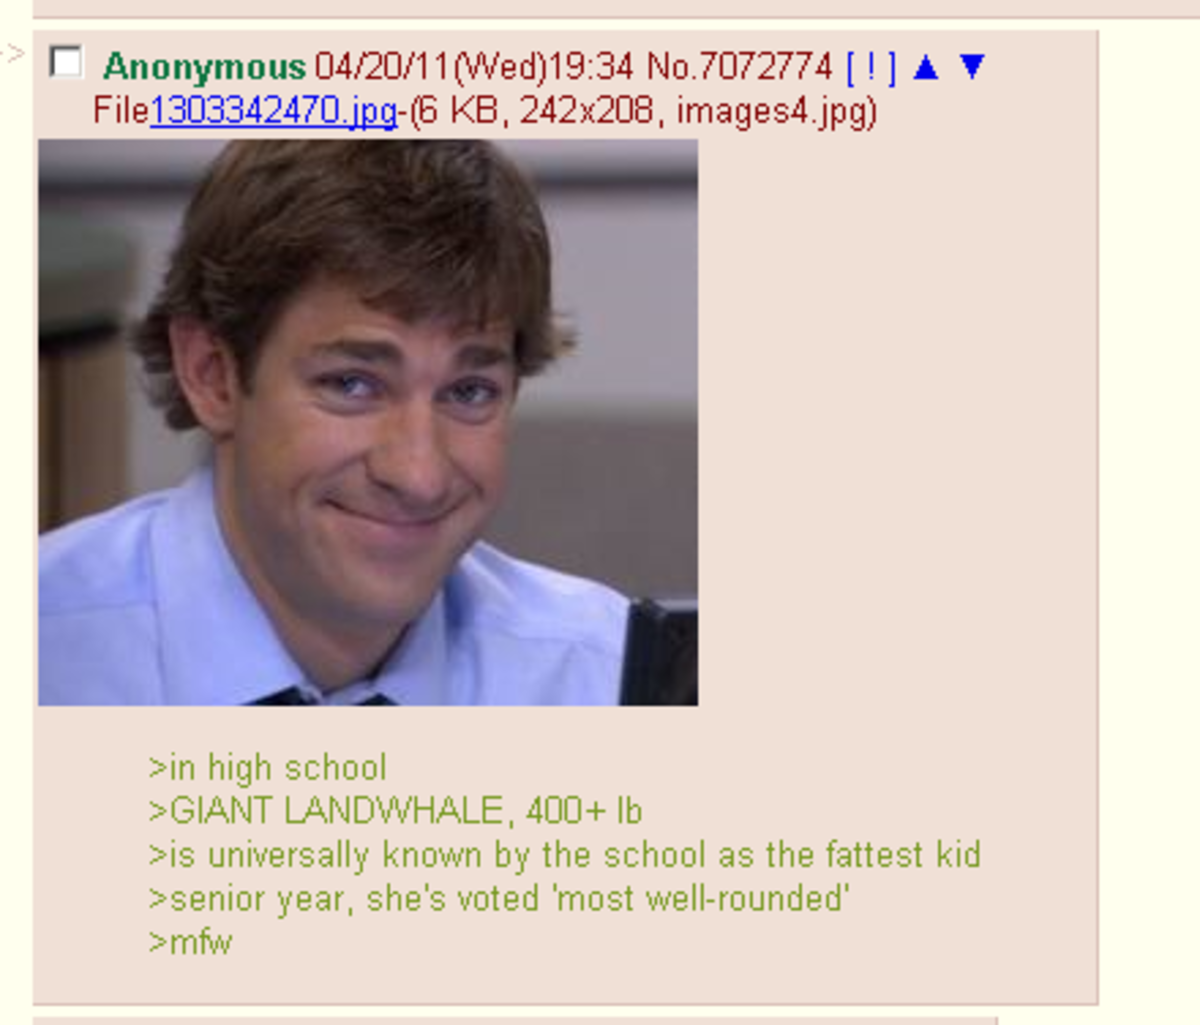 agonizing flippant Mongoose. join list: DailyGreentext (270 subs)Mention Clicks: 7376Msgs Sent: 23168Mention History.. I remember this girl back in highschool who had all her fat down in her thighs and stomach, there was no fat anywhere else. her lower body looked like a disk, a